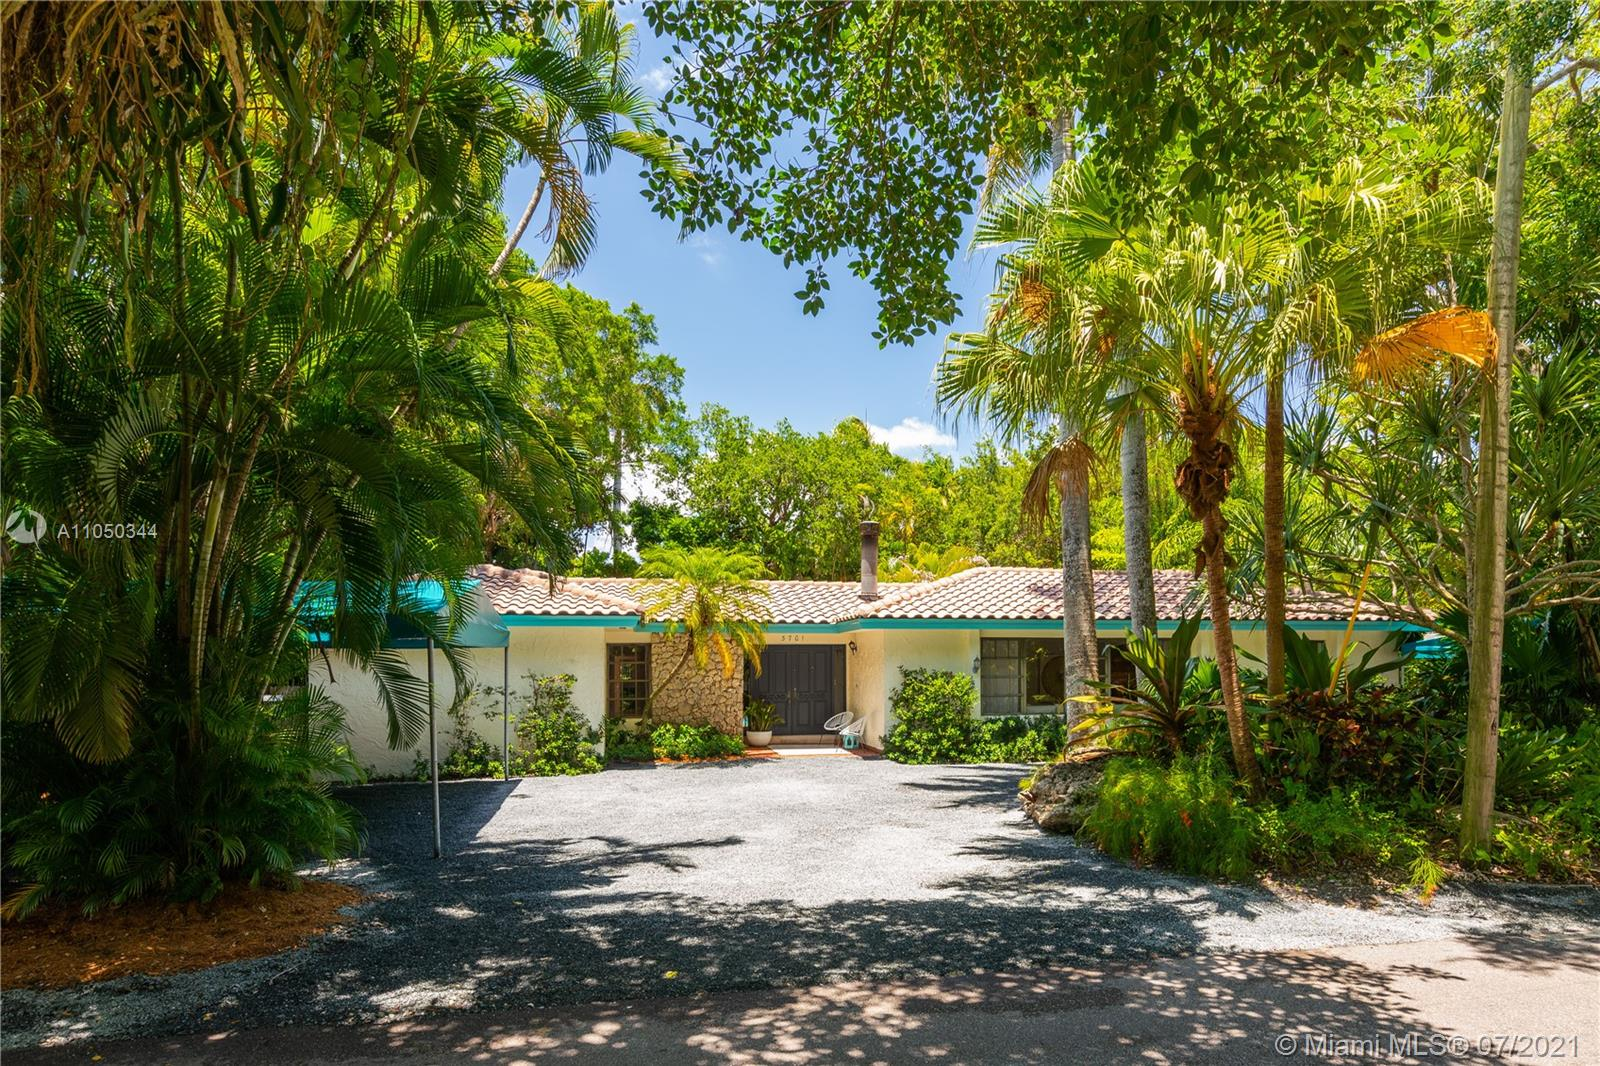 This highly sought-after Coconut Grove address is the location of this beautiful 5-bedroom home with more versatility than can be imagined. It provides a near perfect balance of living and working spaces. All the bedrooms are oversized with generous closets. The main suite has both a lavish, remodeled bath as well as a bonus room which can serve as a gym, studio or office. The elegant living room with its classic fireplace adjoins a remodeled kitchen and dining area that is the heart of the home. A generous in-law suite, office and family room provides additional room for everyone to live, work and play. The ideal U-shape floorplan provides a view of the sparkling pool from almost every room in the house. Located in Flood Zone X, no flood insurance is required. A Very Special Home.